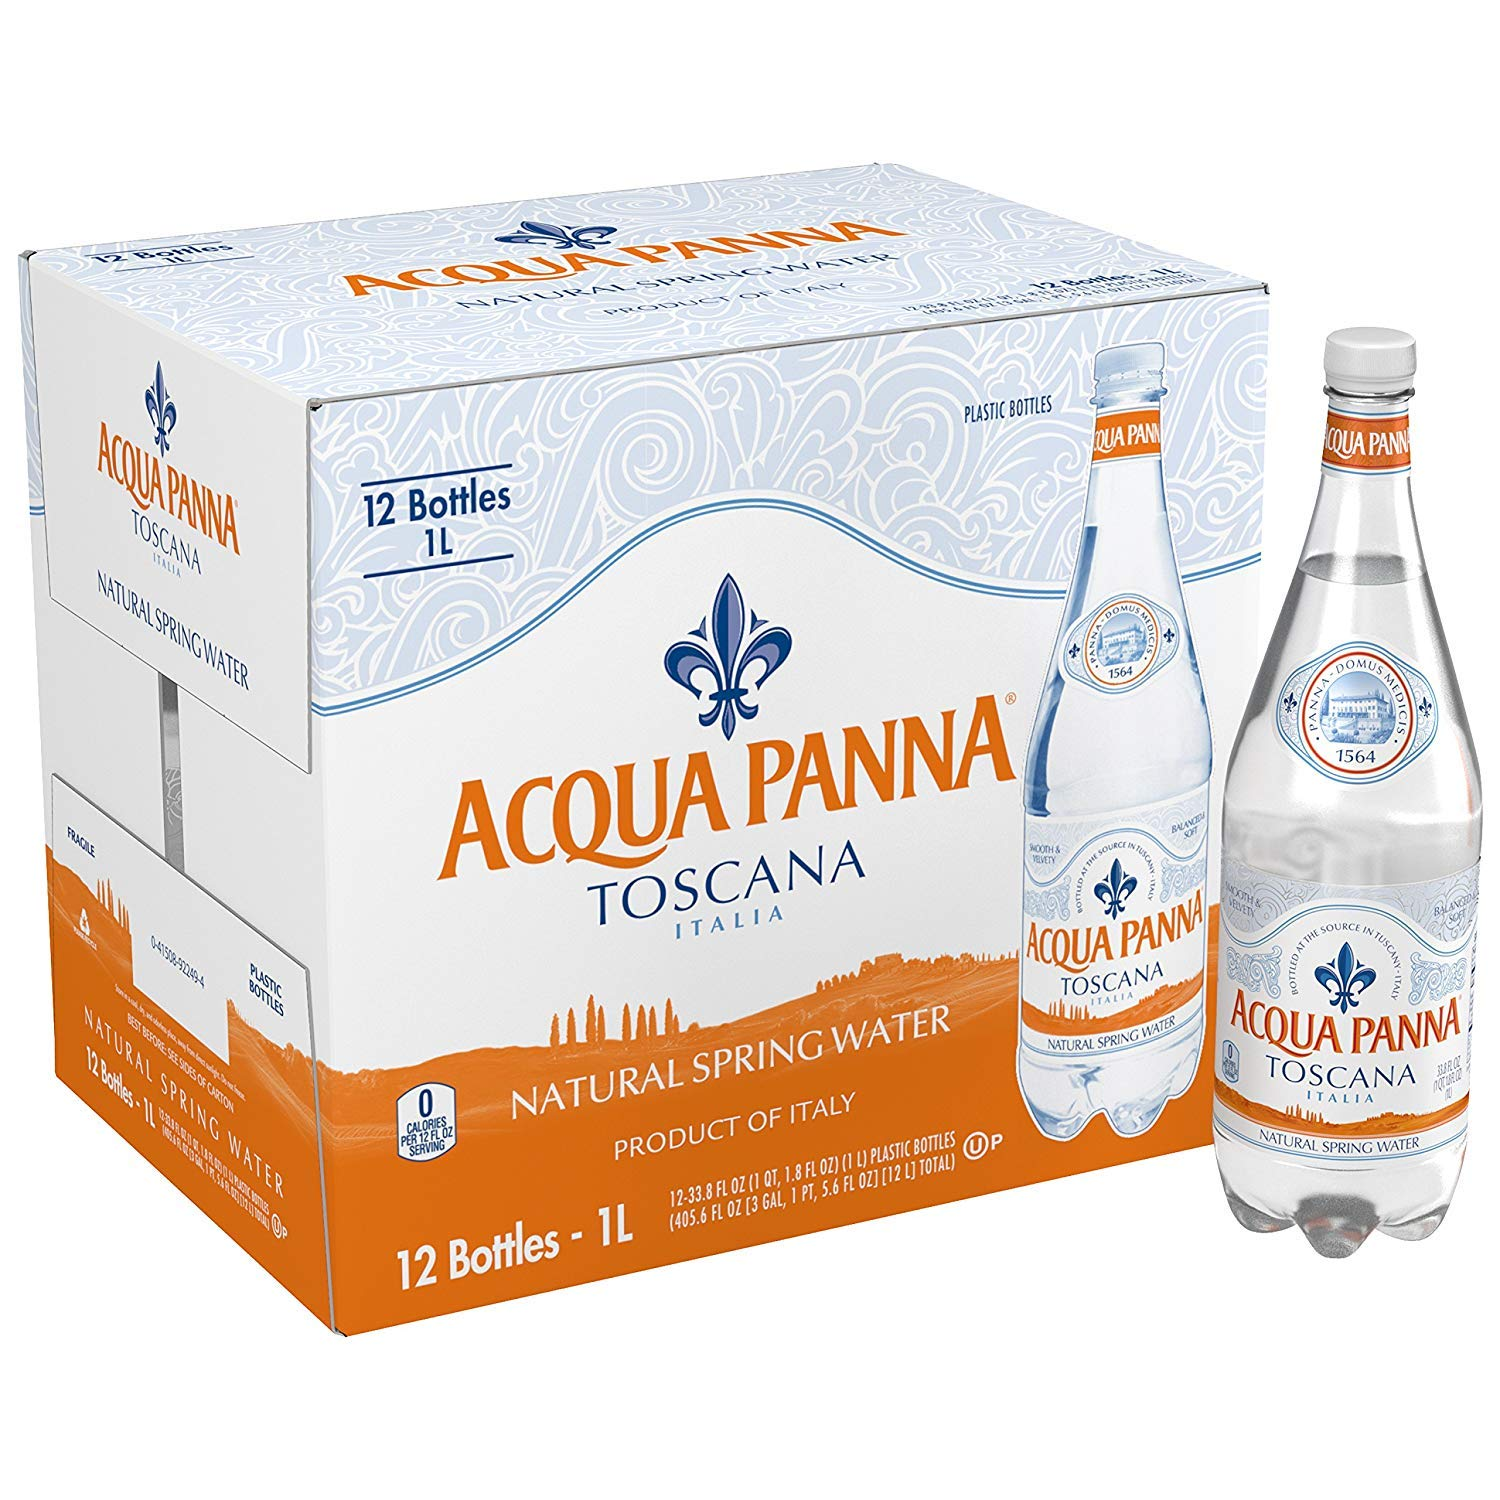 Acqua Panna sgdfg Natural Spring Water, 33.8-Ounce Plastic Bottles (Pack of 12) 2 Cases by Acqua Panna